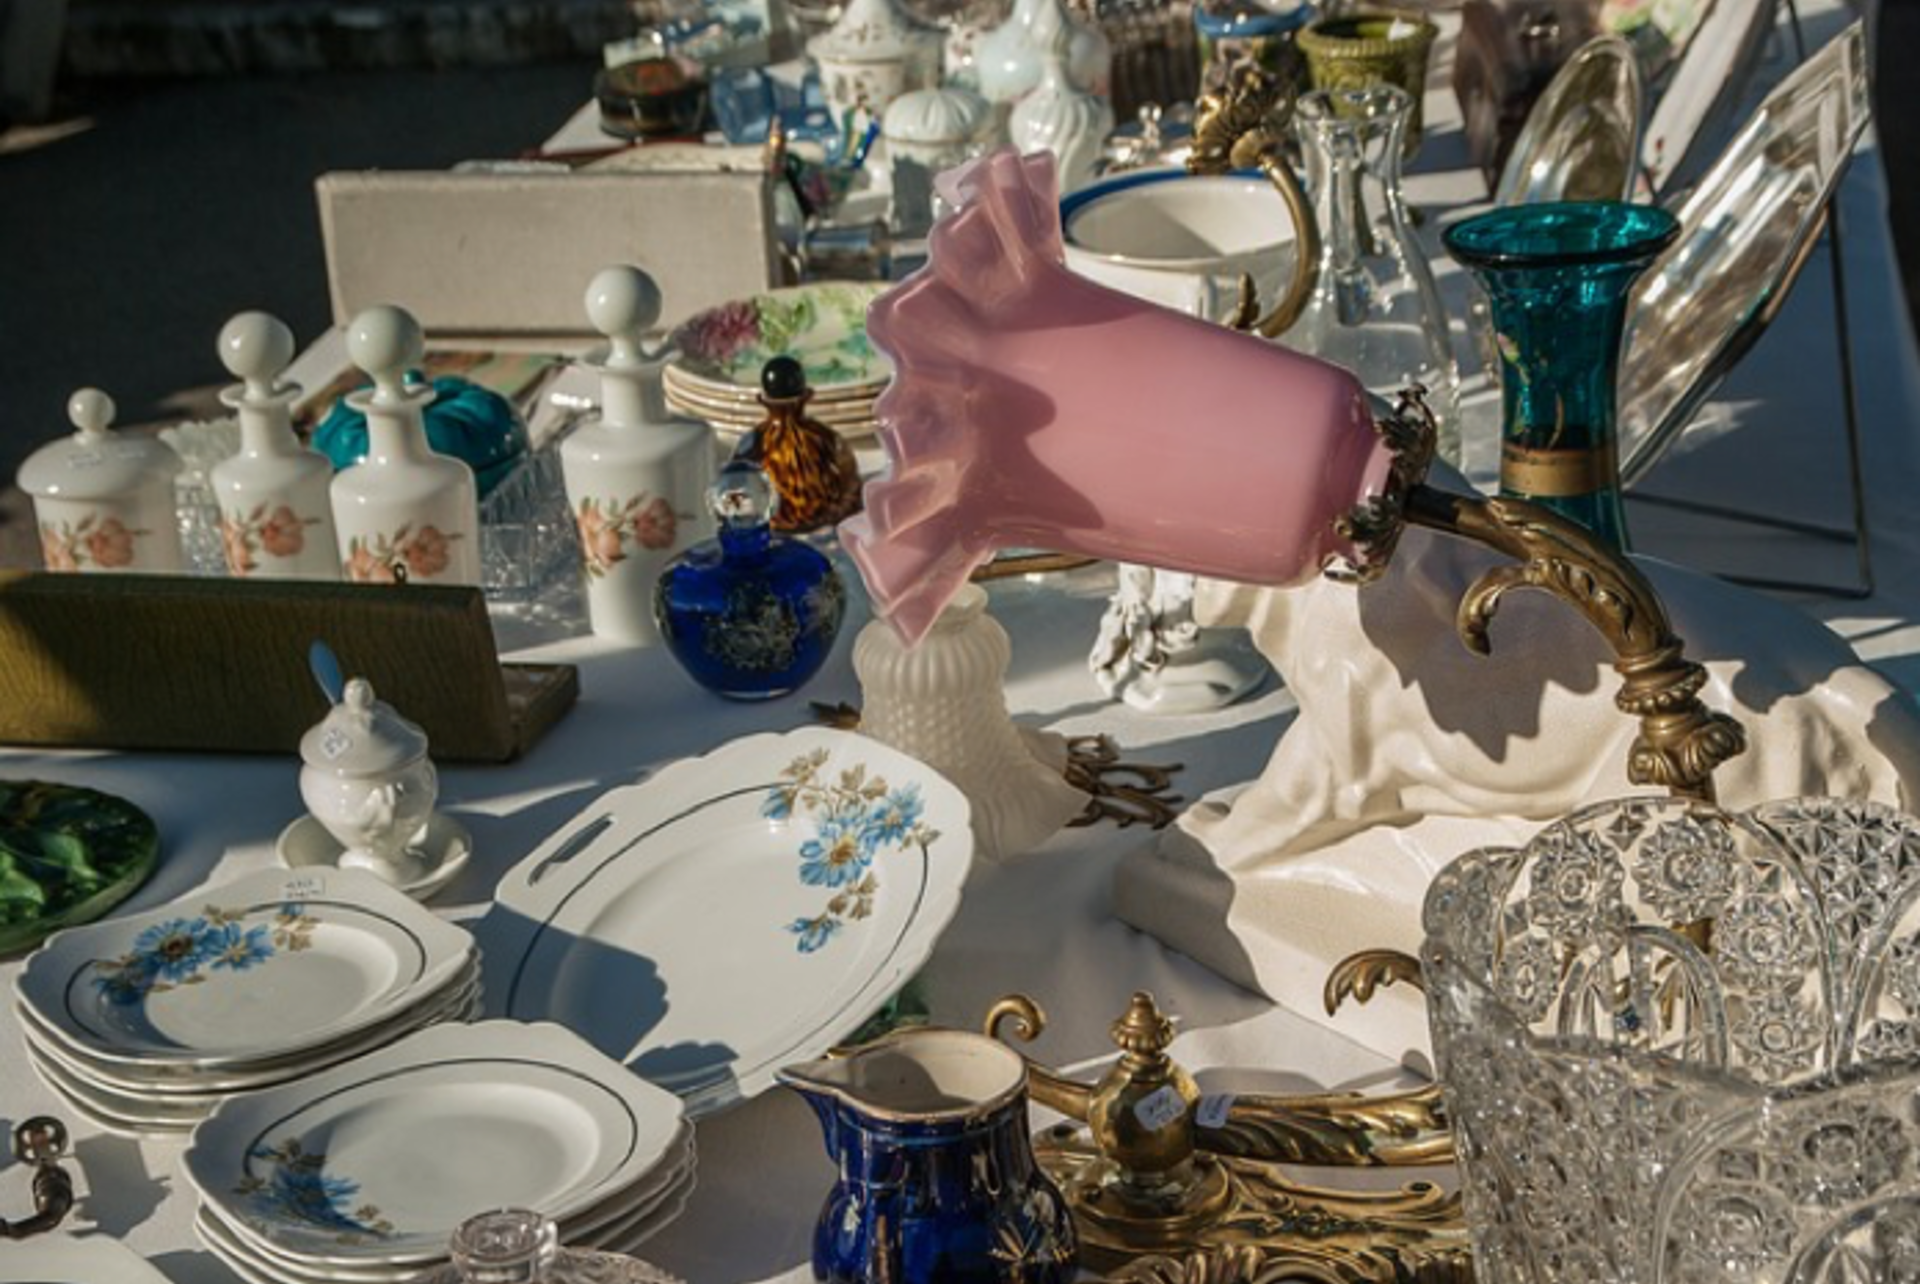 5 Steps for Planning a Yard Sale Right Every Time